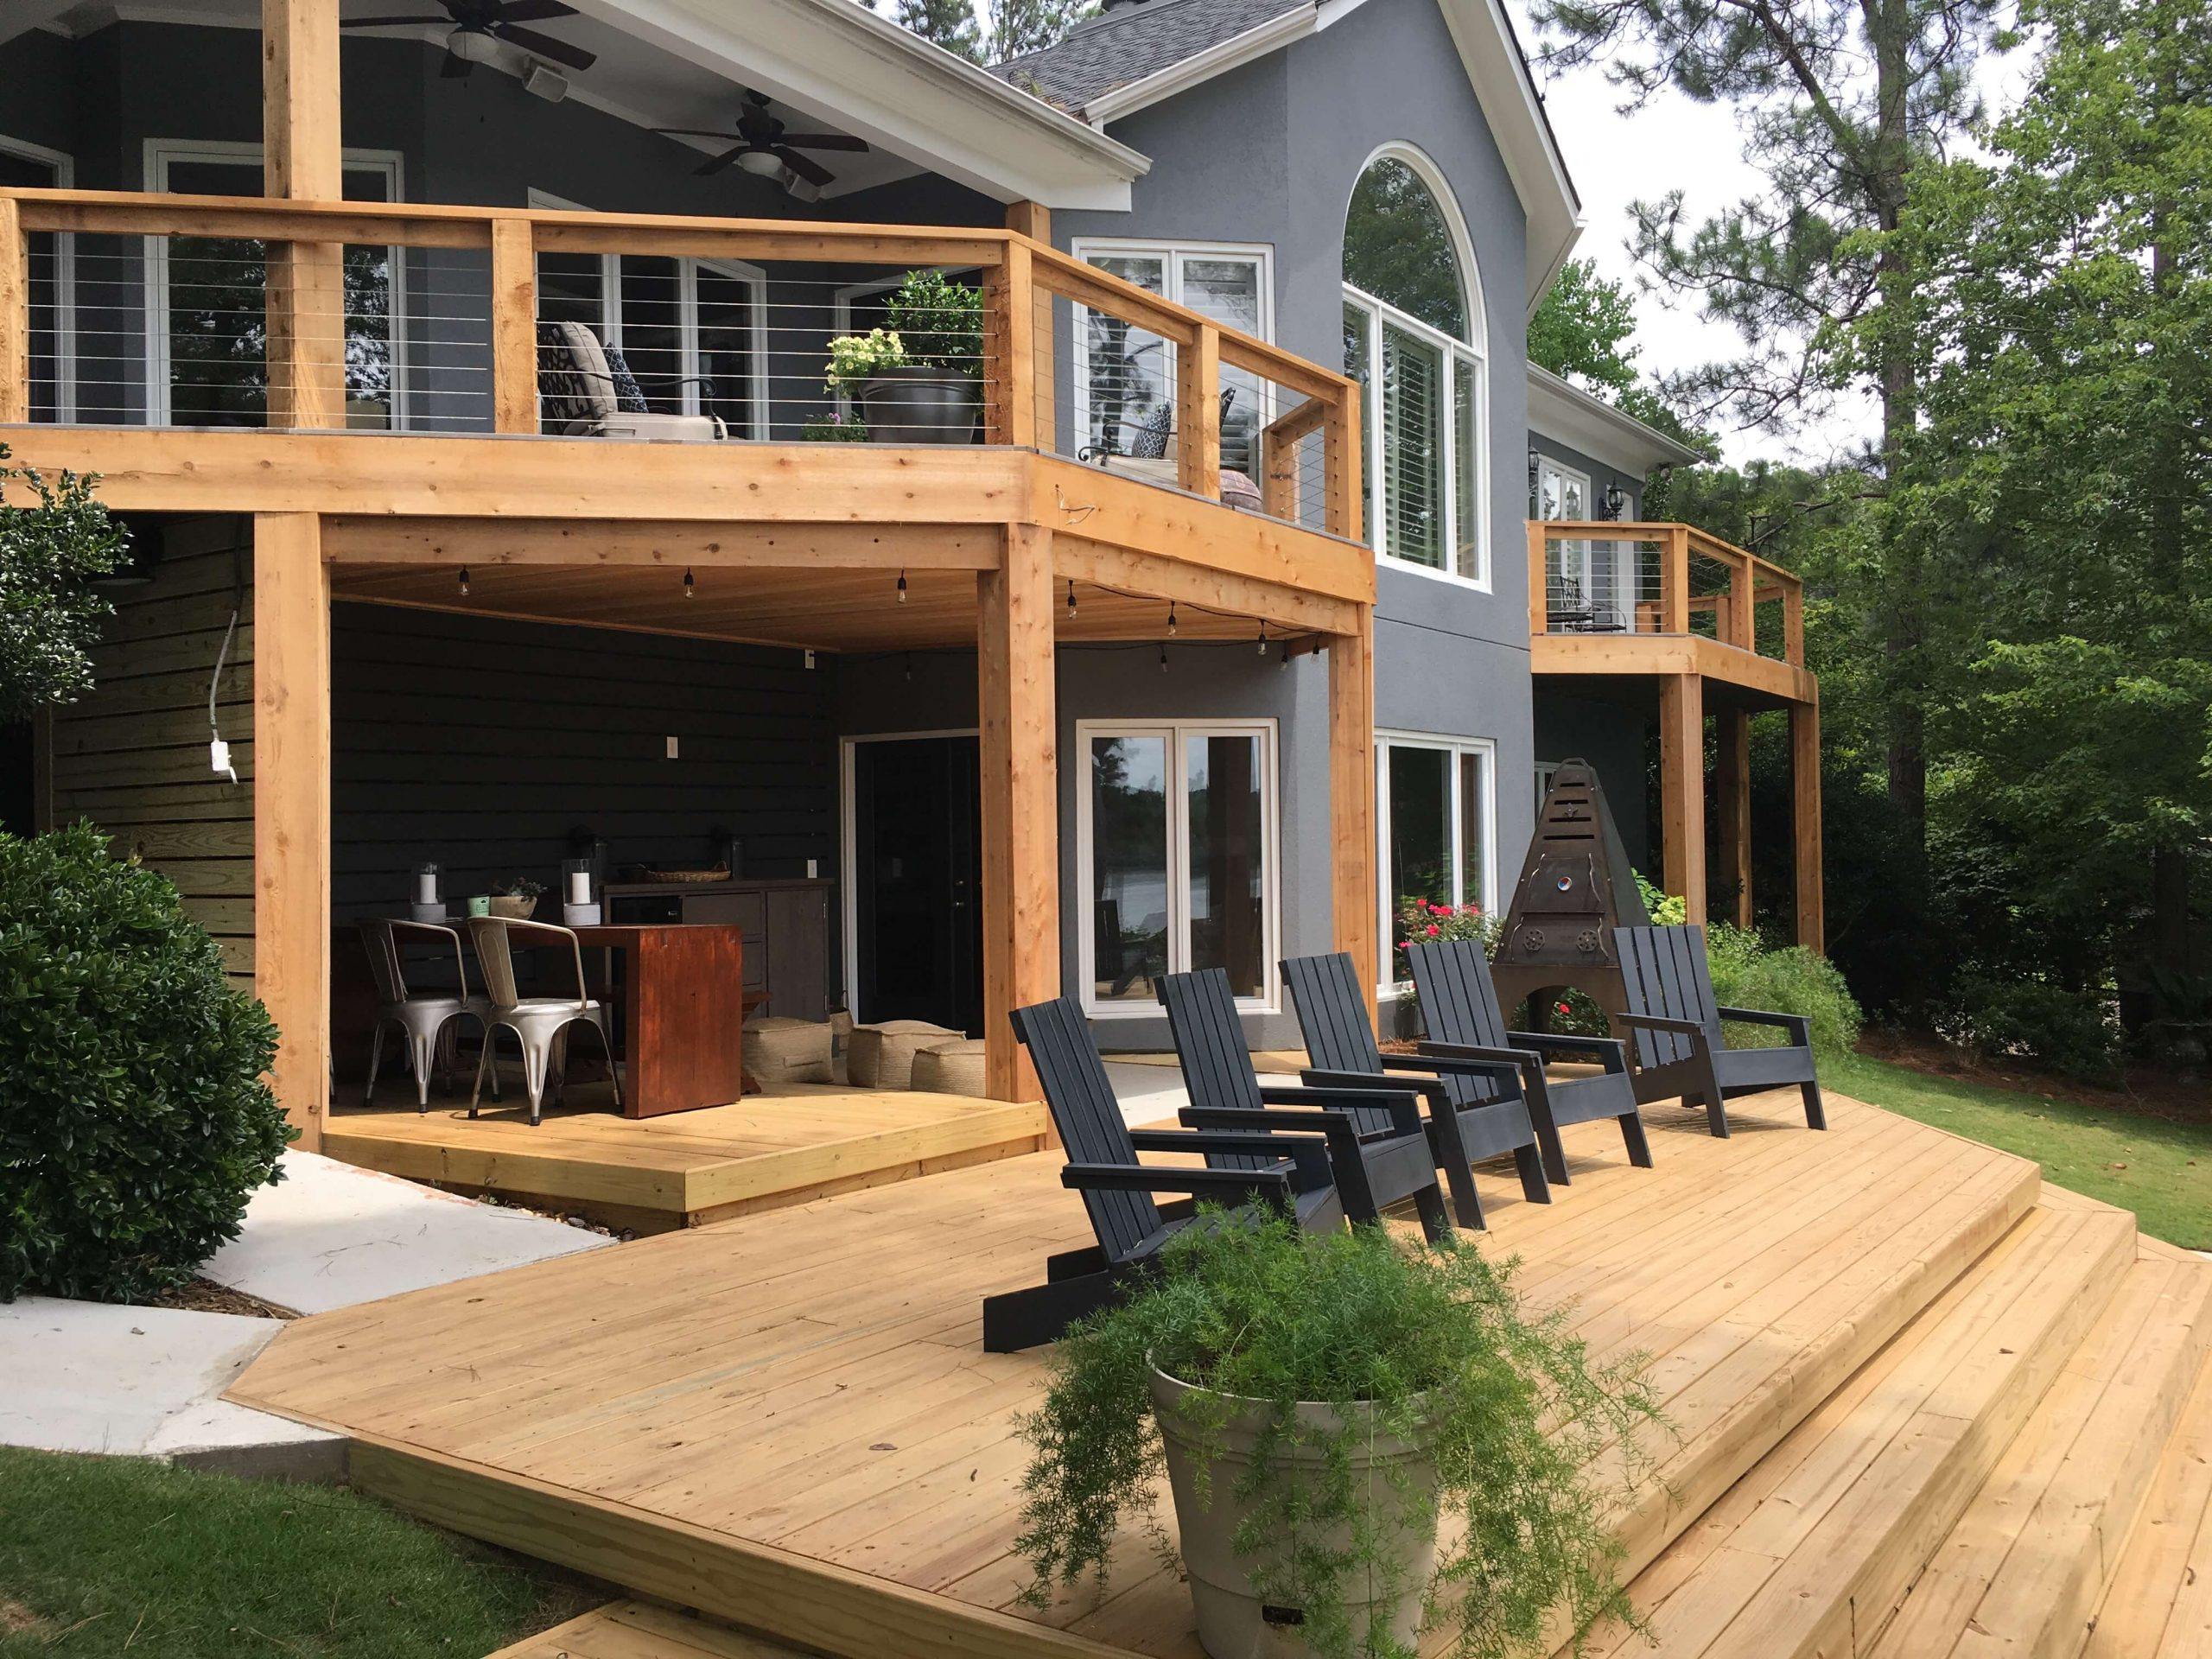 Five Reasons to Add a Deck to Your Home